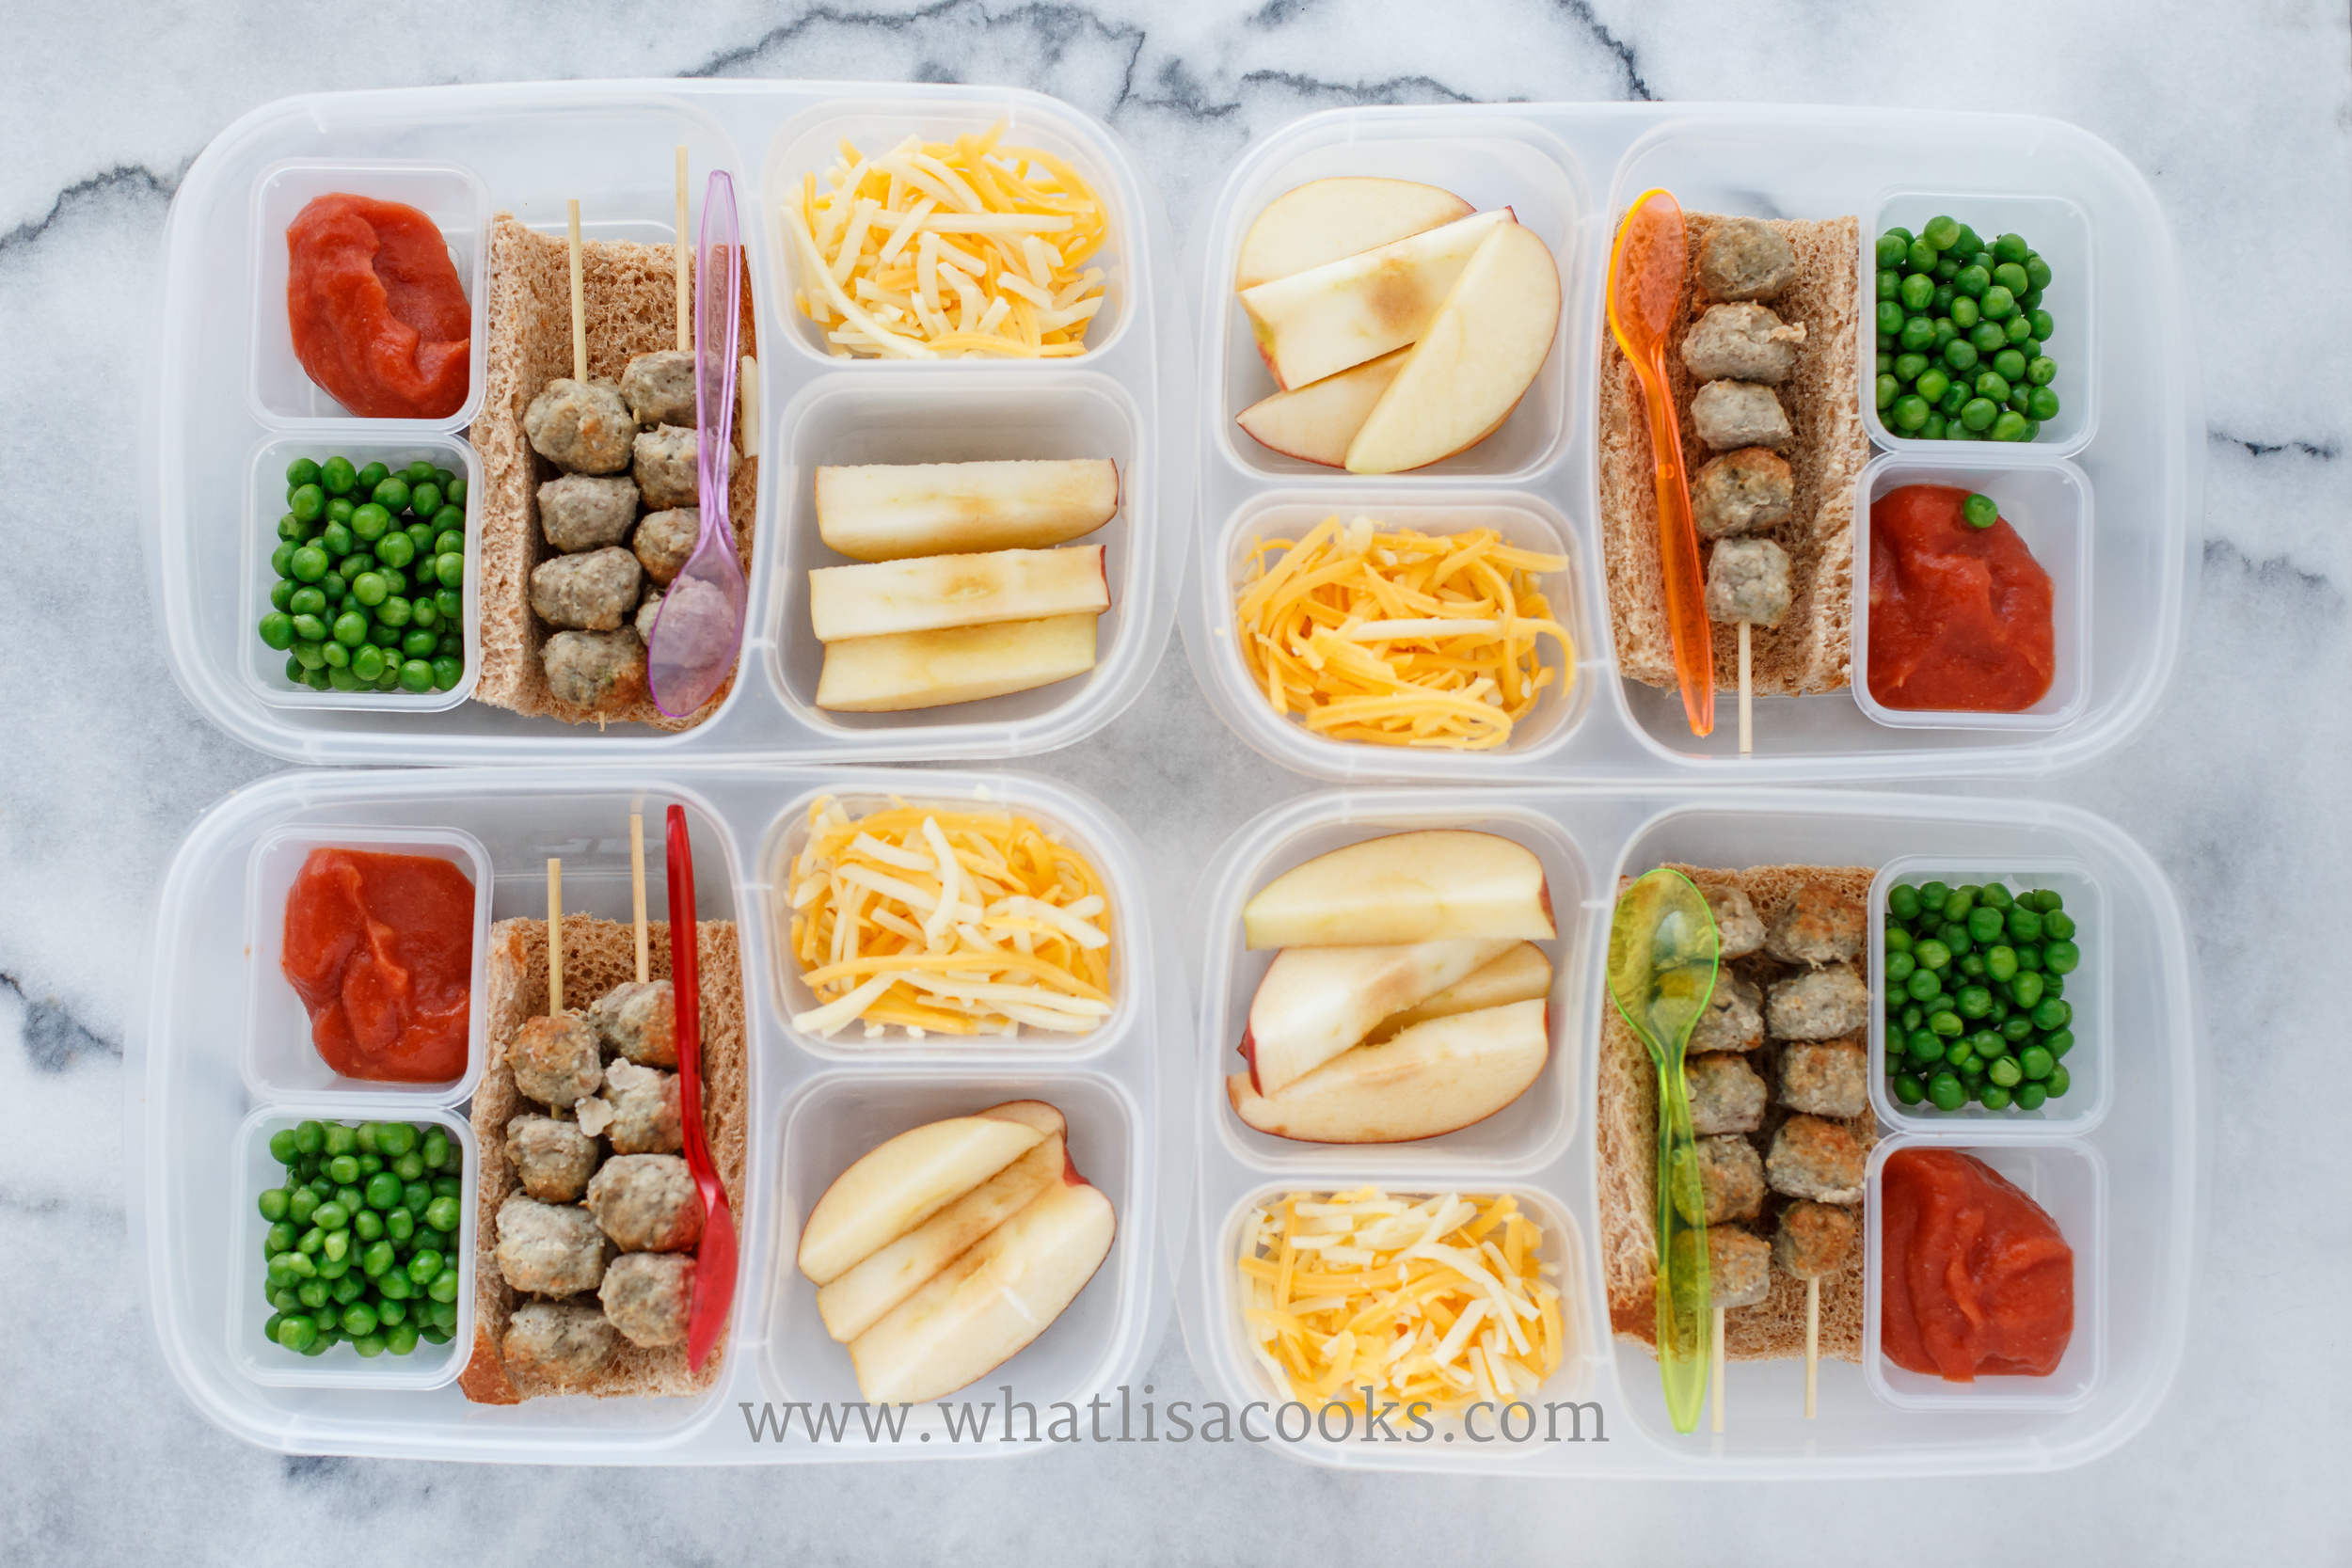 Deconstructed meatball sandwich kits. Tiny meatballs on skewers, bread, tomato sauce, shredded cheese, with peas and apples.